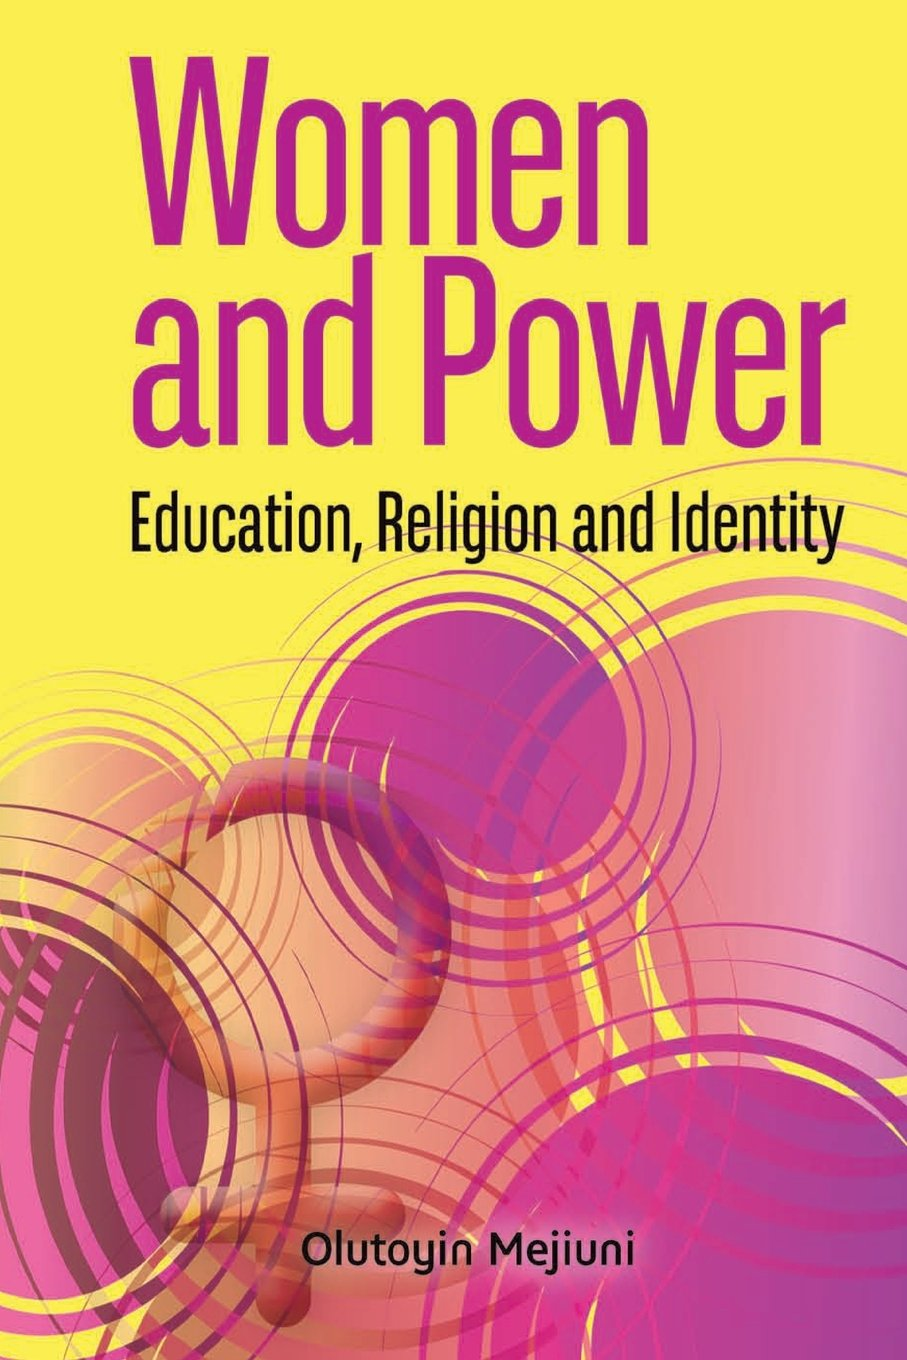 Women and Power. Education, Religion and Identity PDF